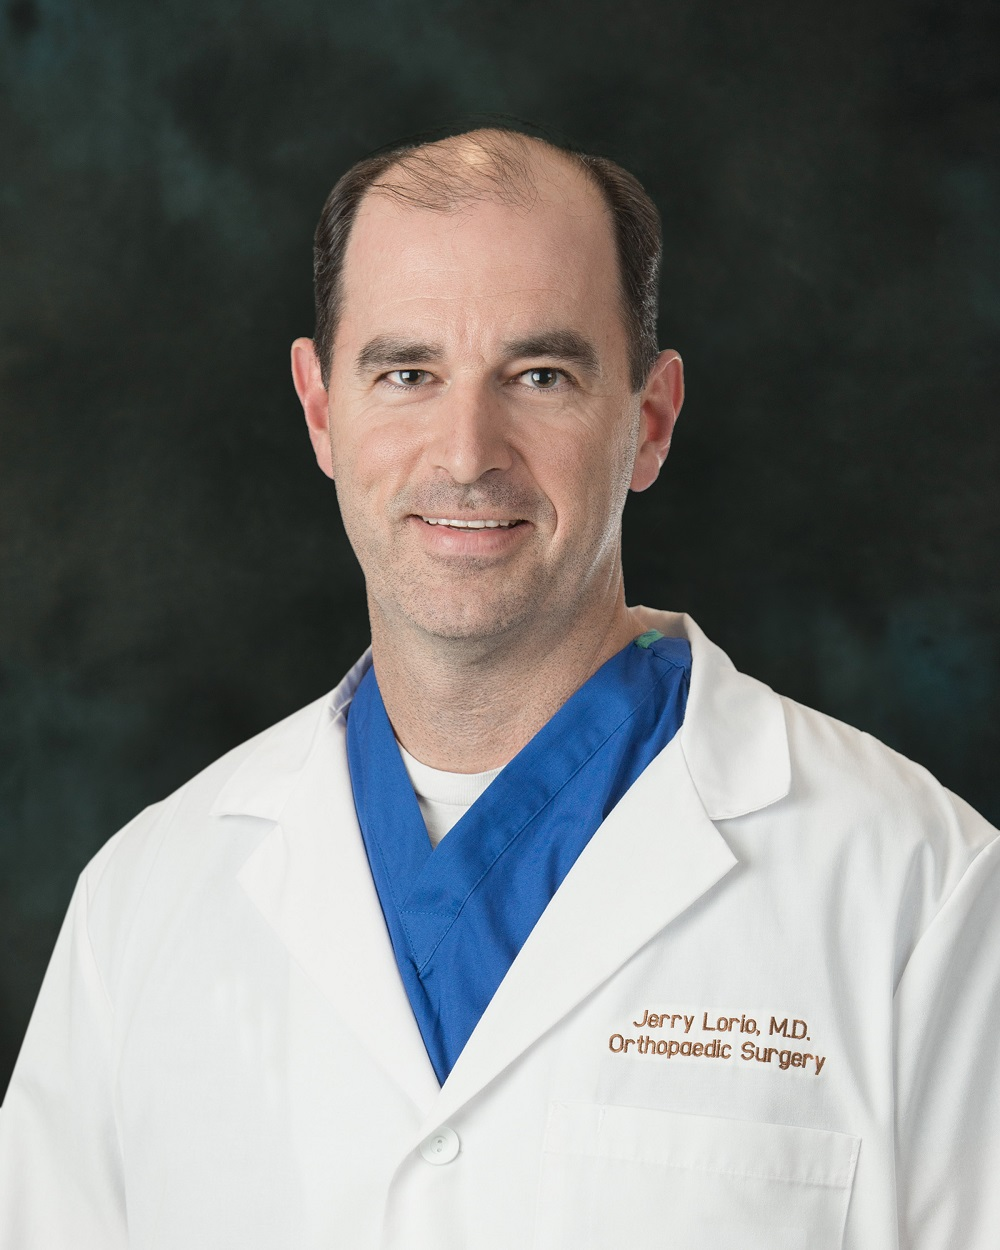 Jerry Lorio, MD